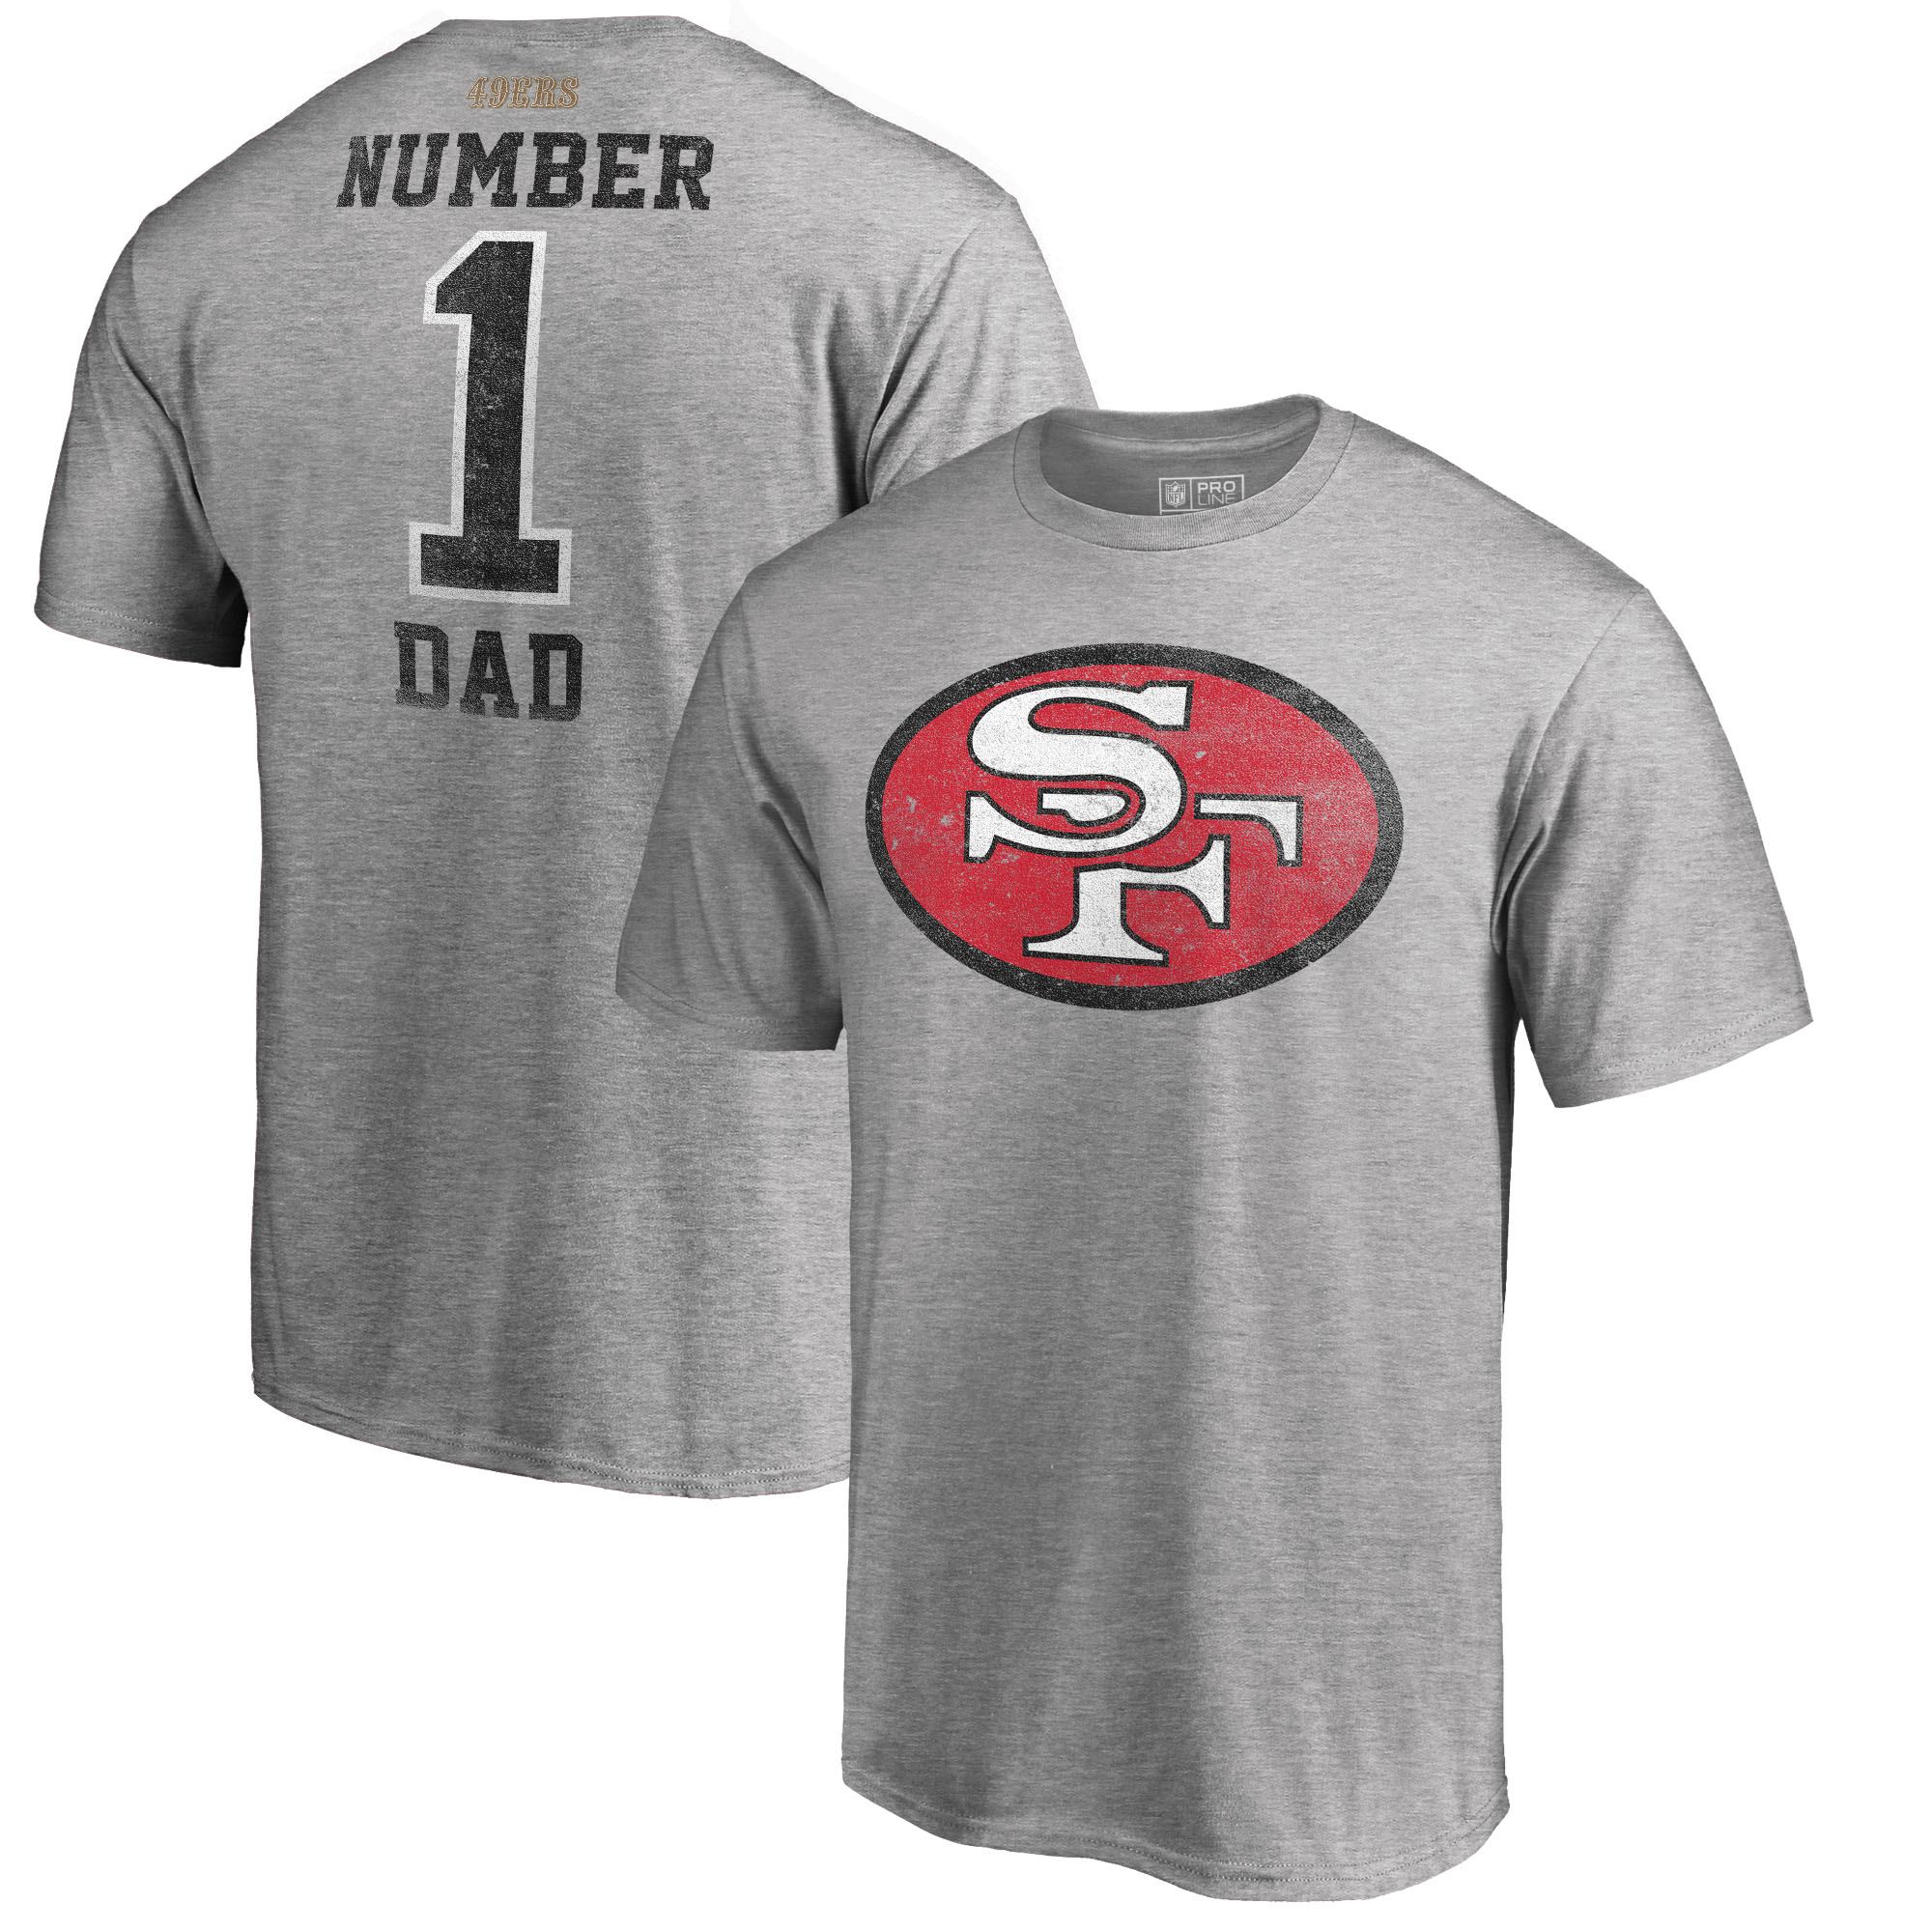 San Francisco 49ers NFL Pro Line by Fanatics Branded Big and Tall Greatest Dad Retro Tri-Blend T-Shirt - Heathered Gray